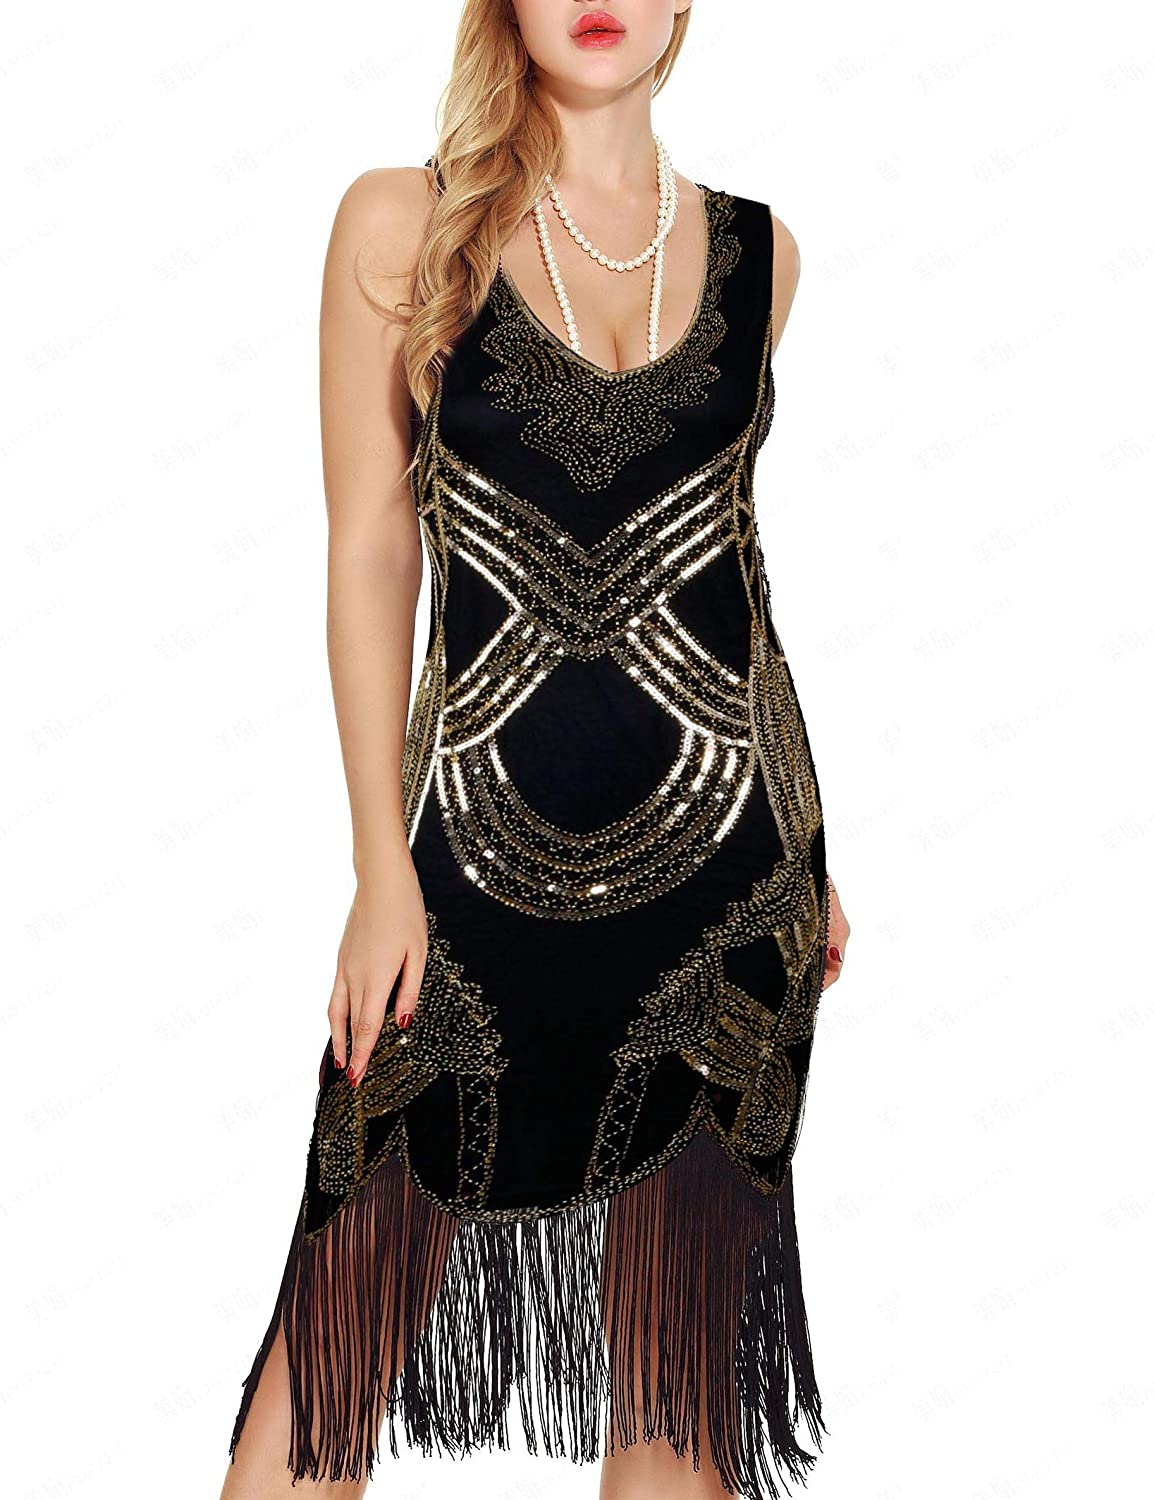 Uniq Sense Women's Retro Vintage Sequin Cocktail Art Deco Great Gatsby Dresses